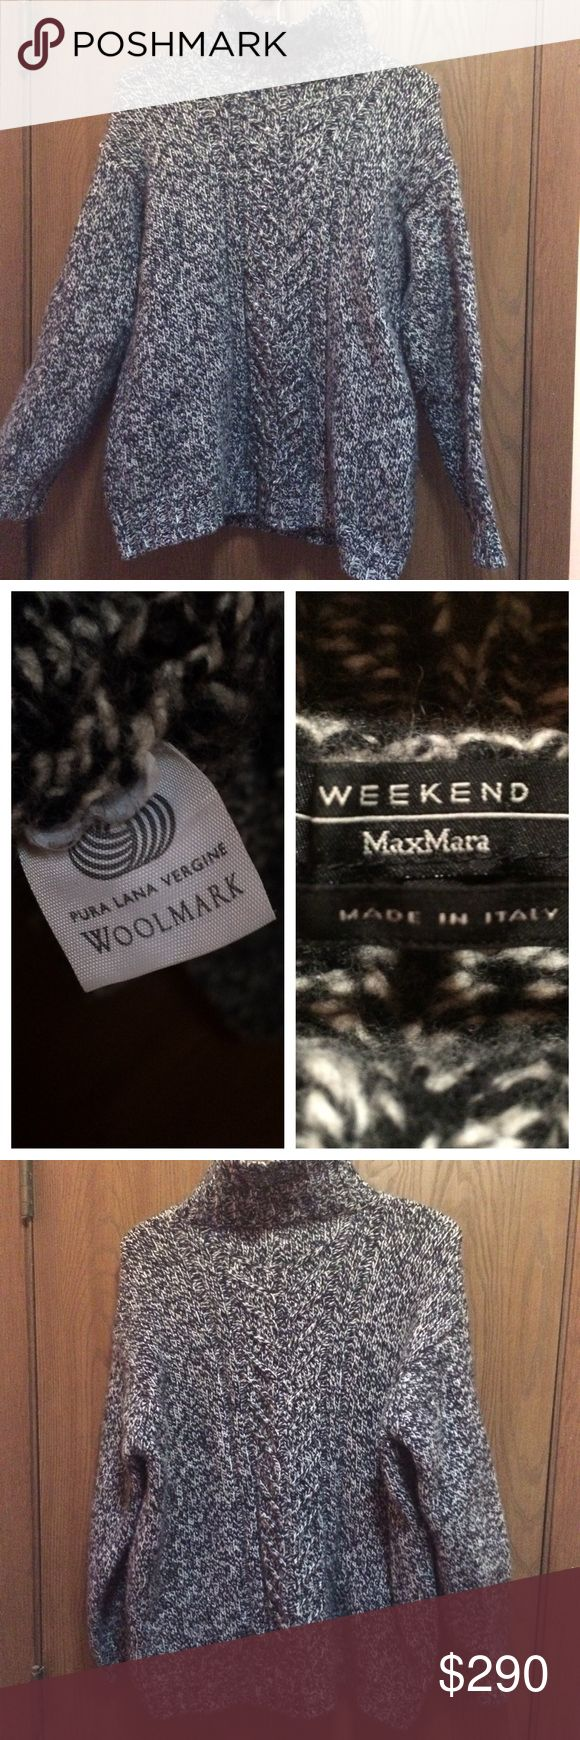 """Authentic MAX MARA virgin wool sweater Size XL, but fits like a large or a 10 so listed as large. Virgin wool. Made in italy. Excellent used condition. Steam treated. So warm and soft. On sale for the summer so buy before fall/winter! Similar items go for $1000. Sak's fifth avenue """"weekend"""" line. Please ask questions before buying!! MaxMara Sweaters Cowl & Turtlenecks"""